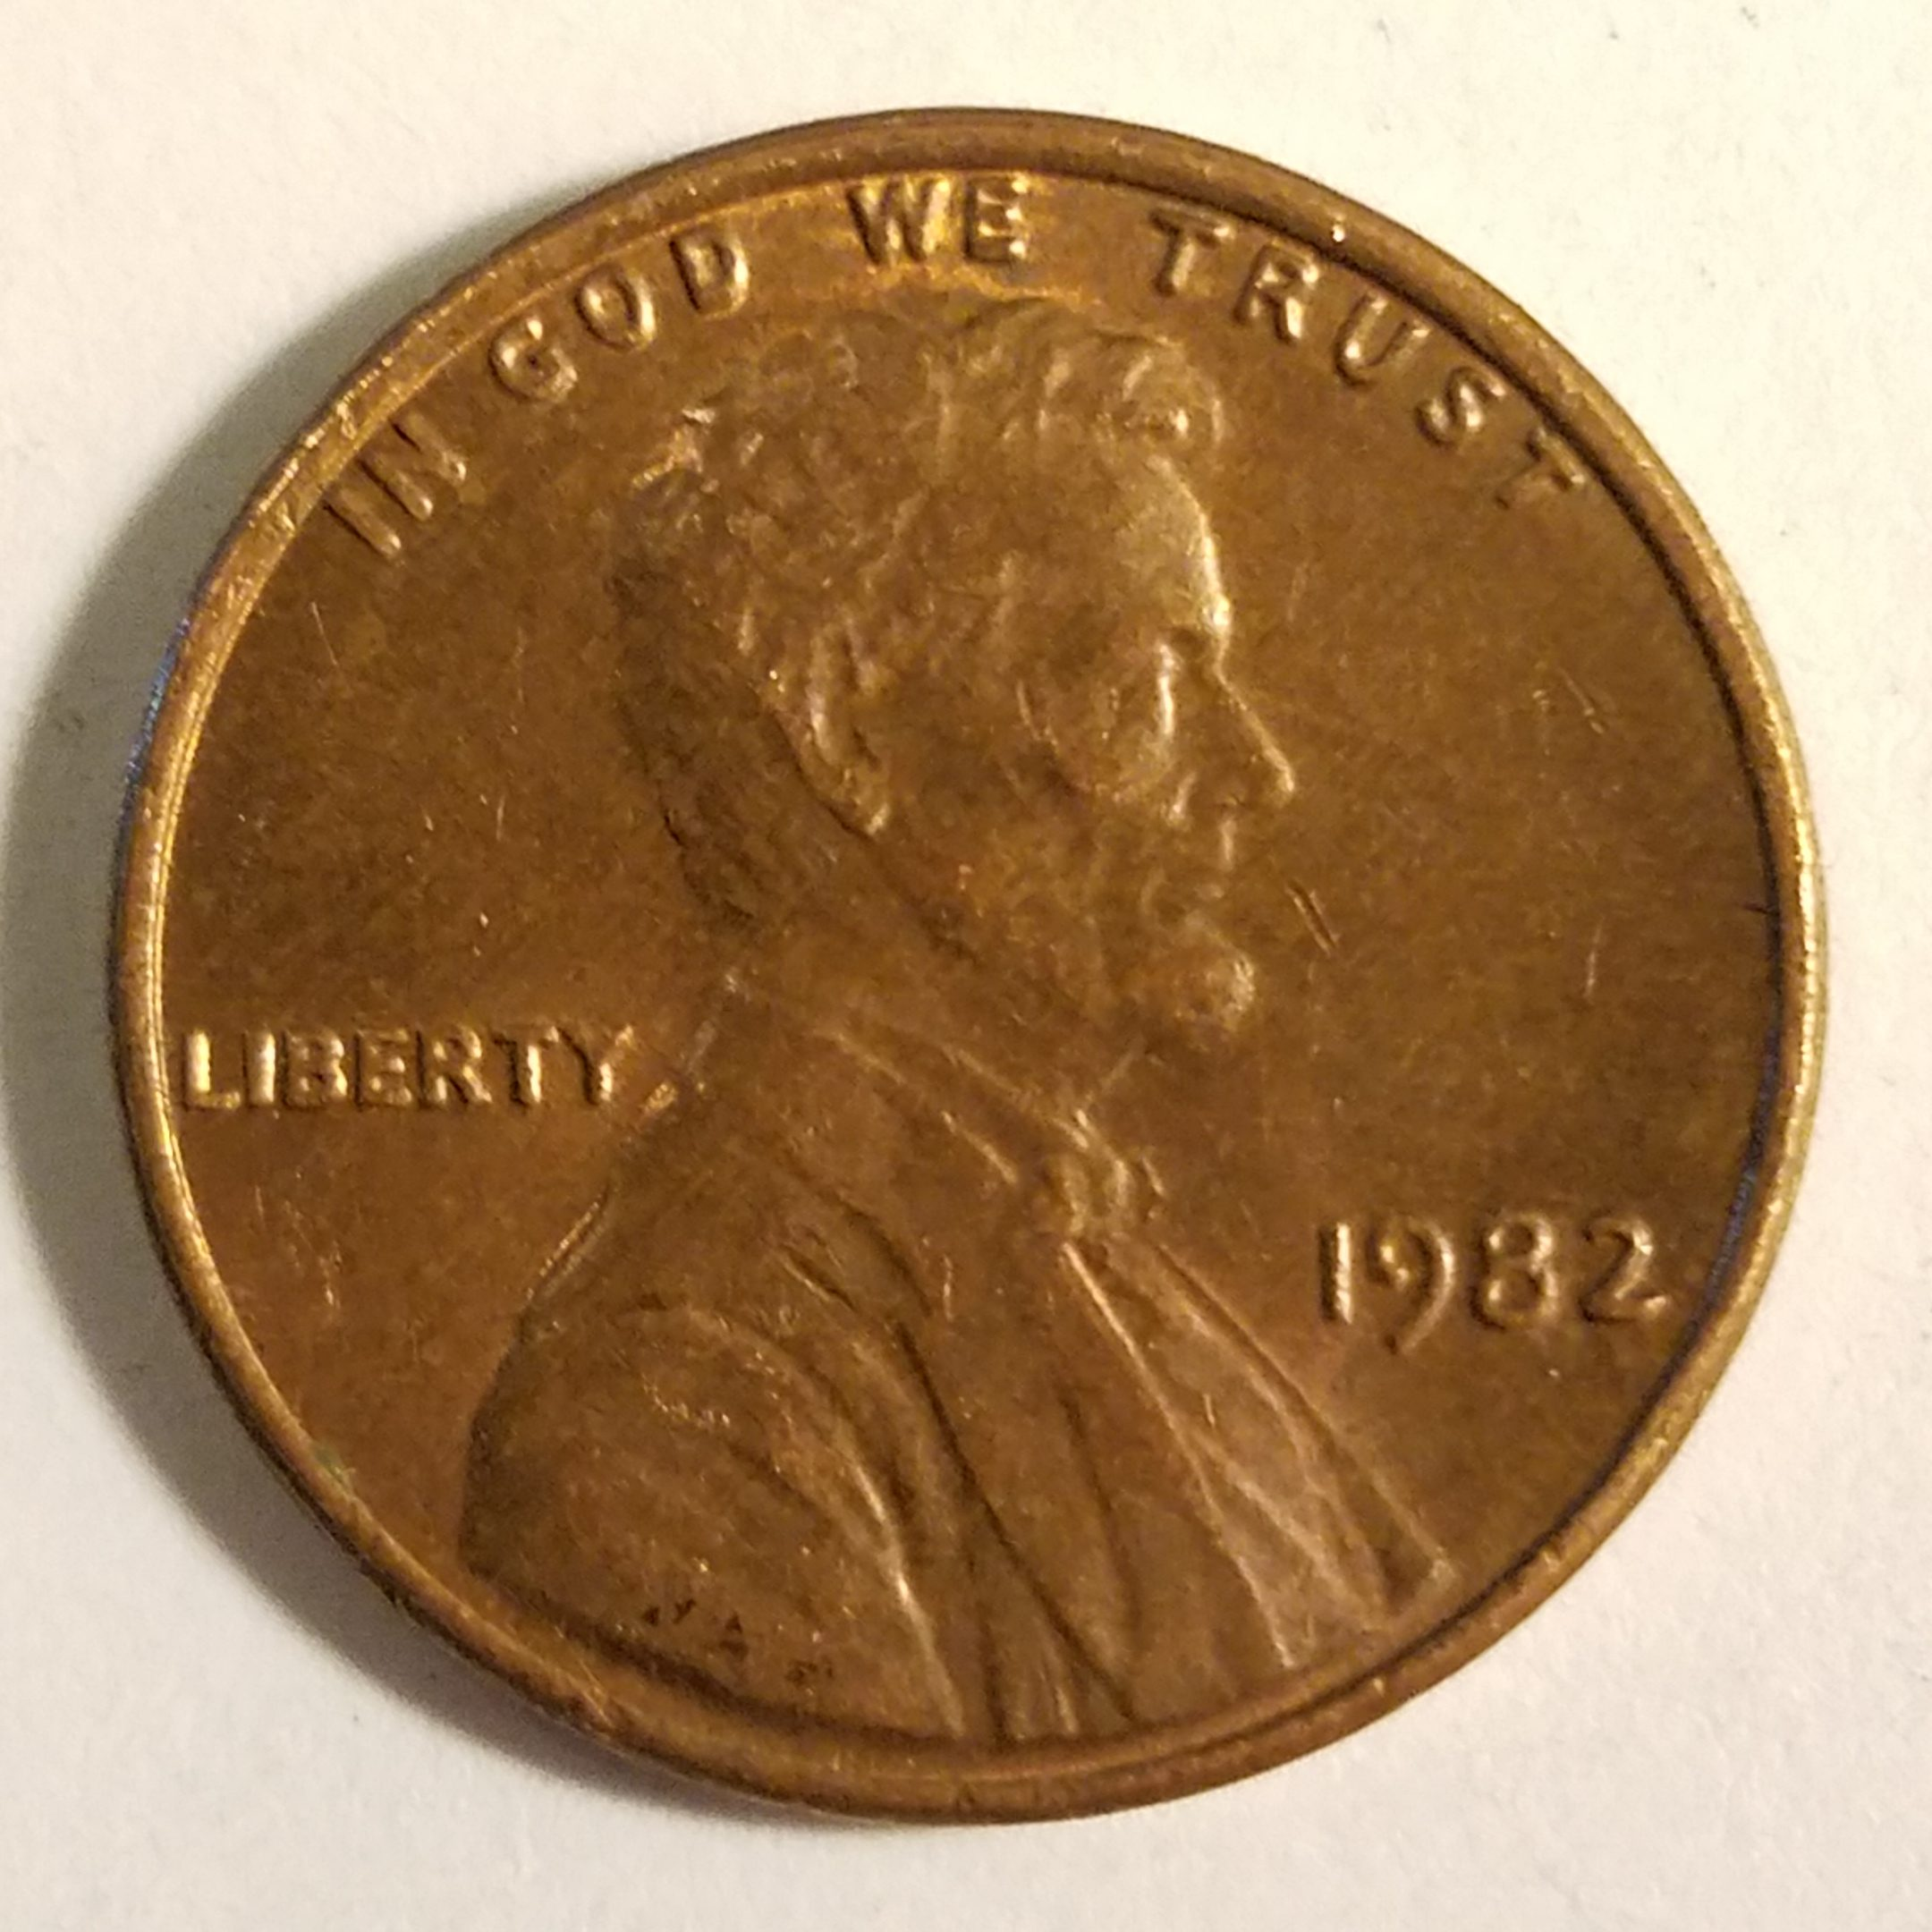 1982 Lincoln Cent with Machine Doubling and Die Crack - The Coin Bag